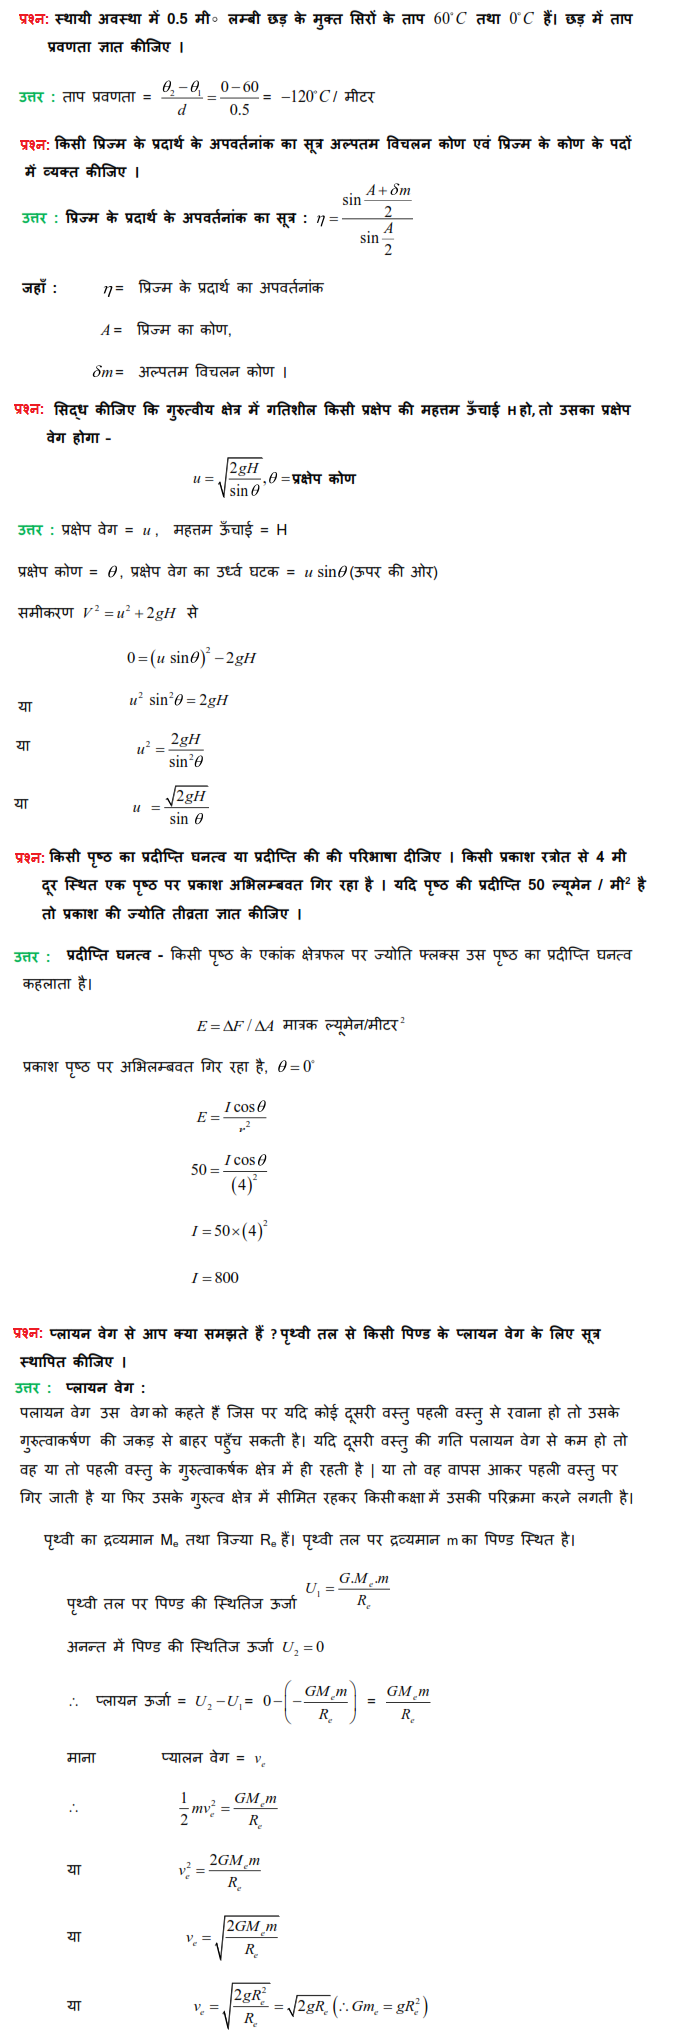 UP Board Class 12th Physics First Solved Question Paper